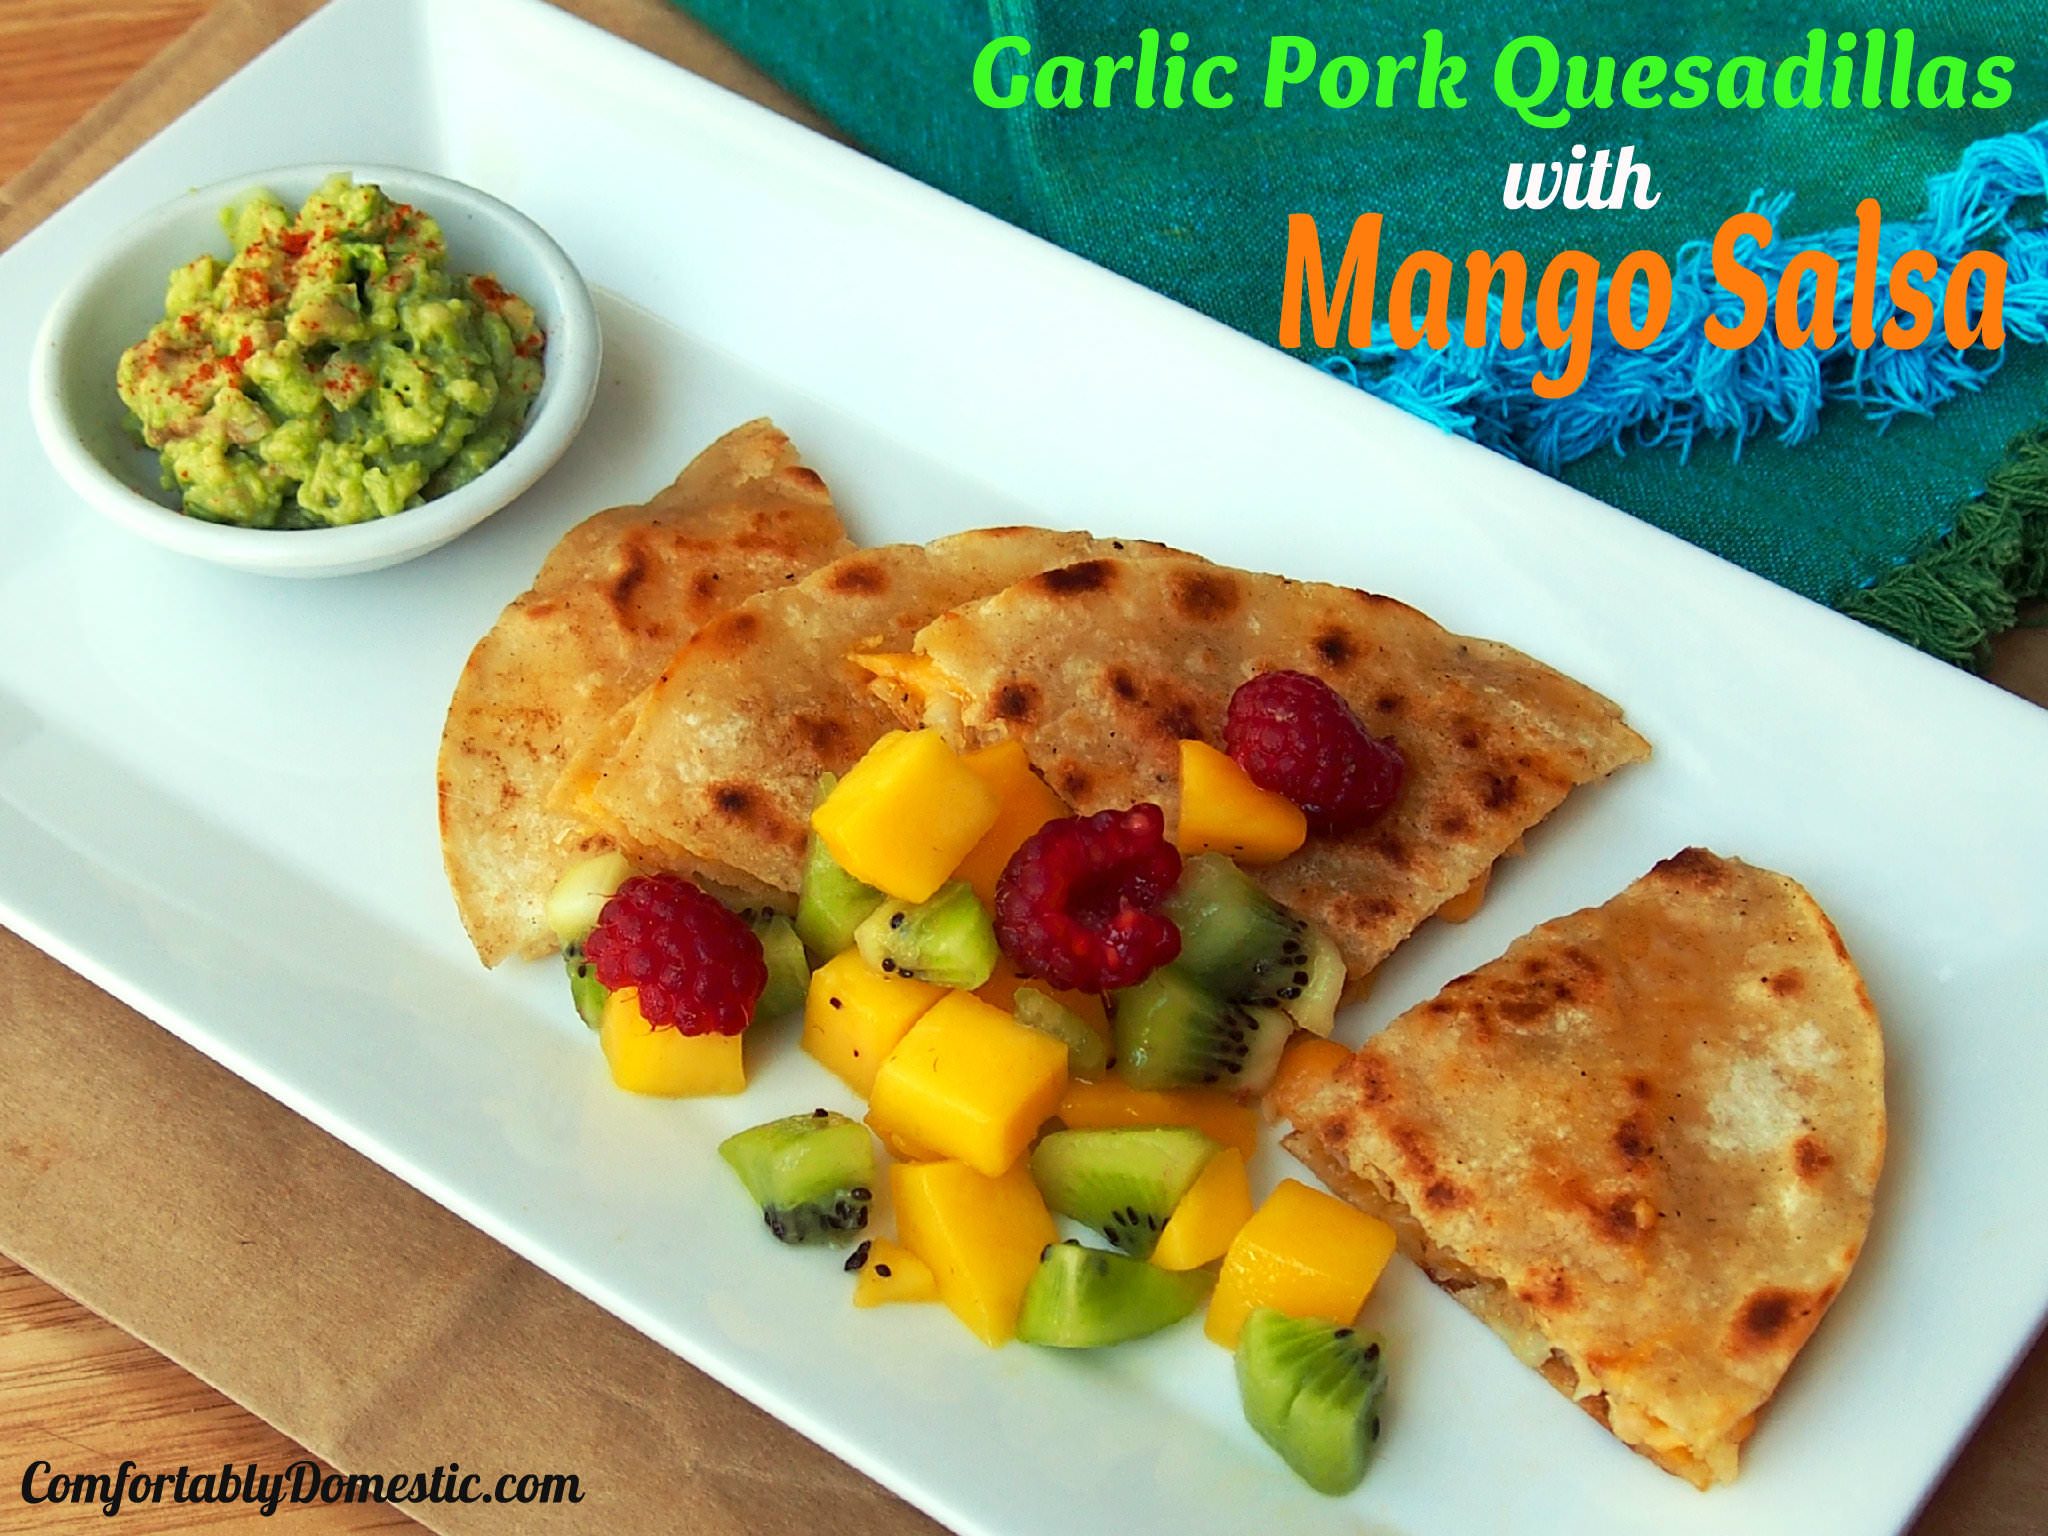 Garlic Pork Quesadillas with Mango Salsa | ComfortablyDomestic.com